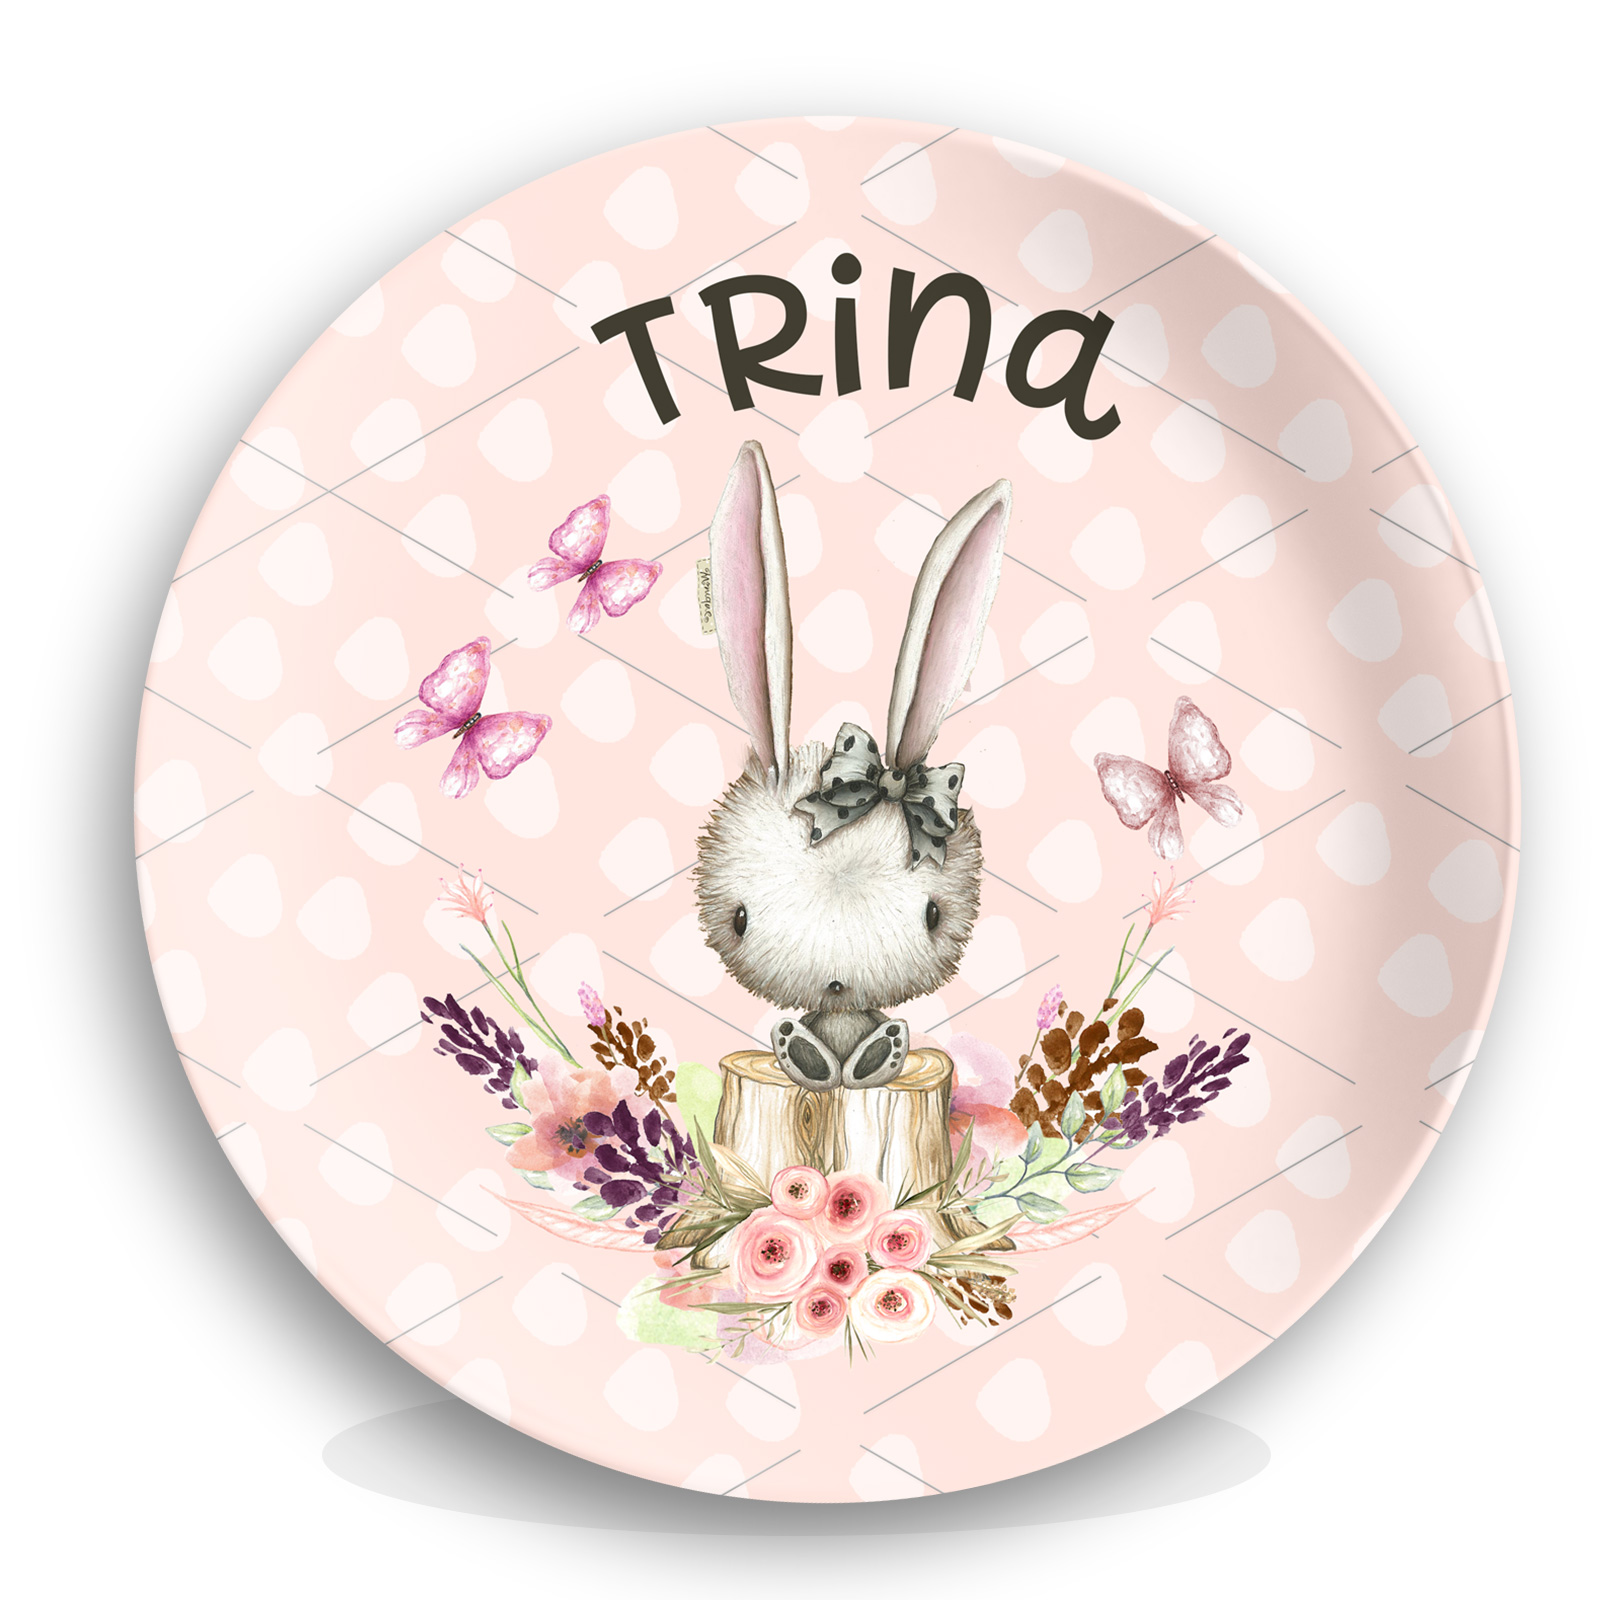 Personalized Kids Plate - Bunny Girls Easter Plate ...  sc 1 st  Lime Rikee Designs & Personalized Kids Plate - Bunny Girls Easter Plate Unique Birthday ...